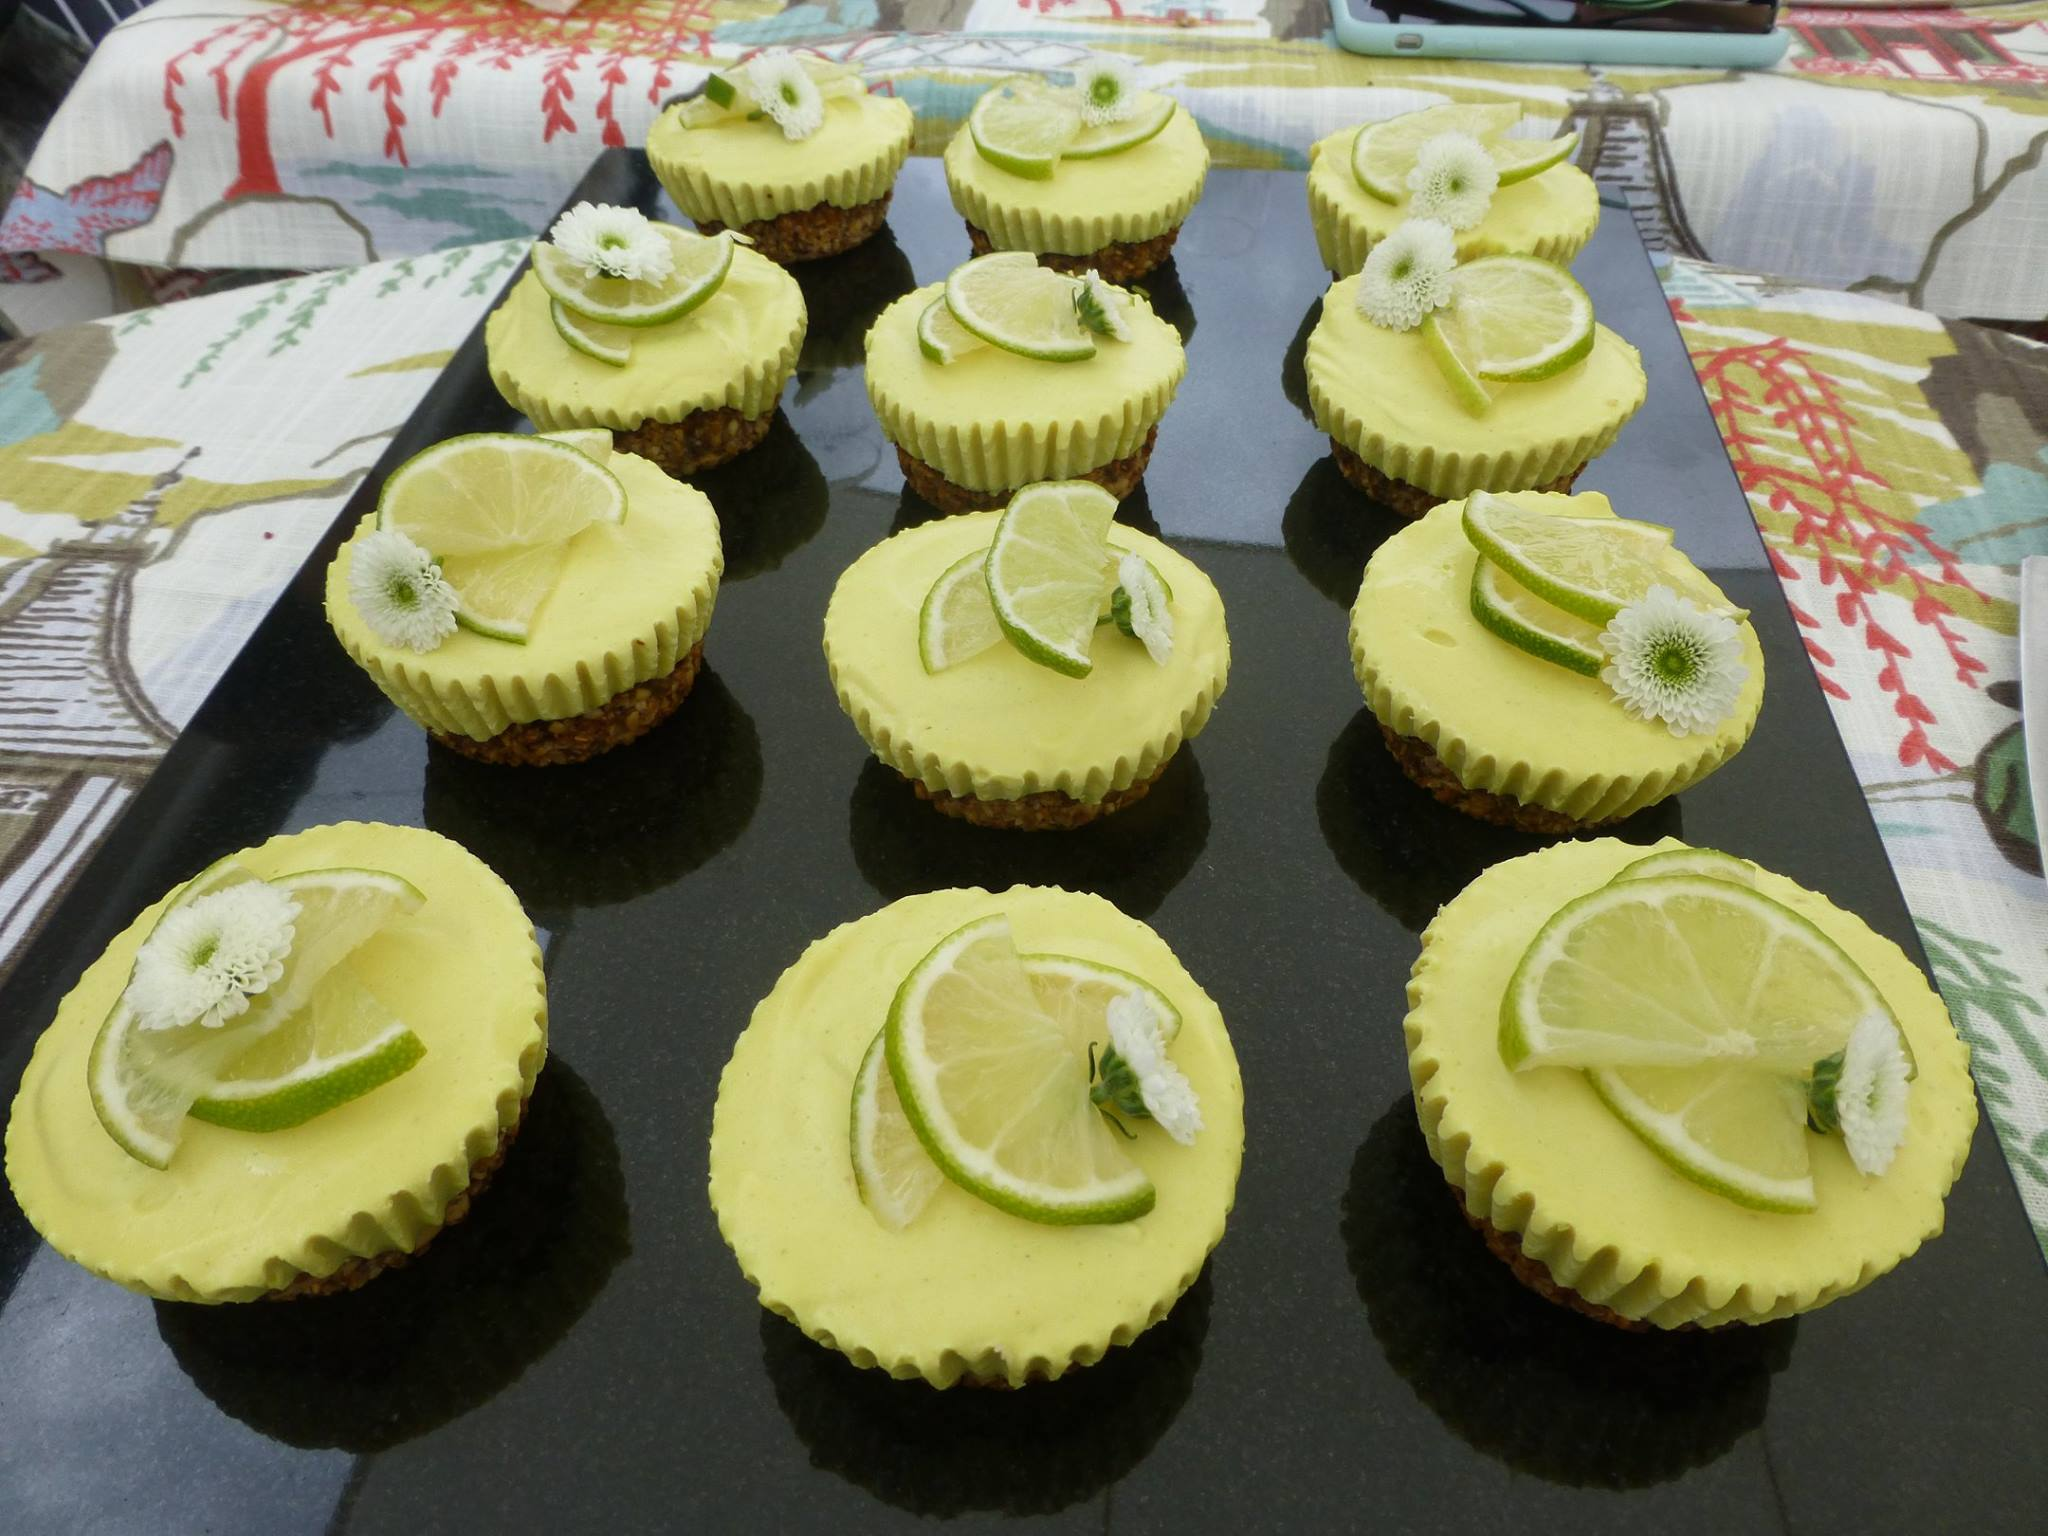 Cookery with a twist!